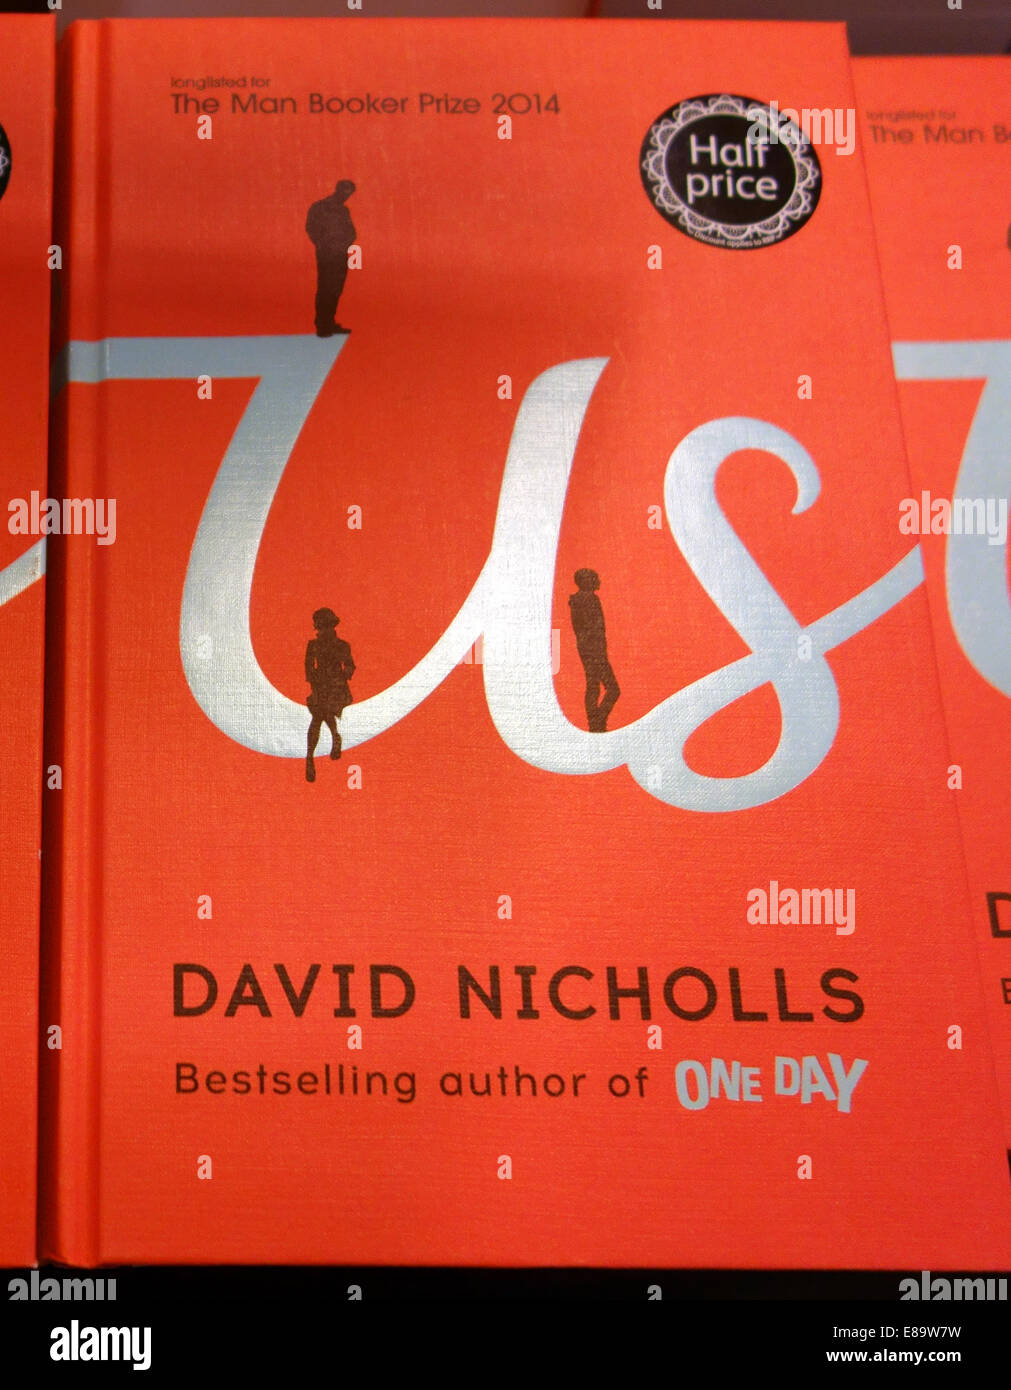 'Us' by David Nicholls, author of bestseller 'One Day', London - Stock Image